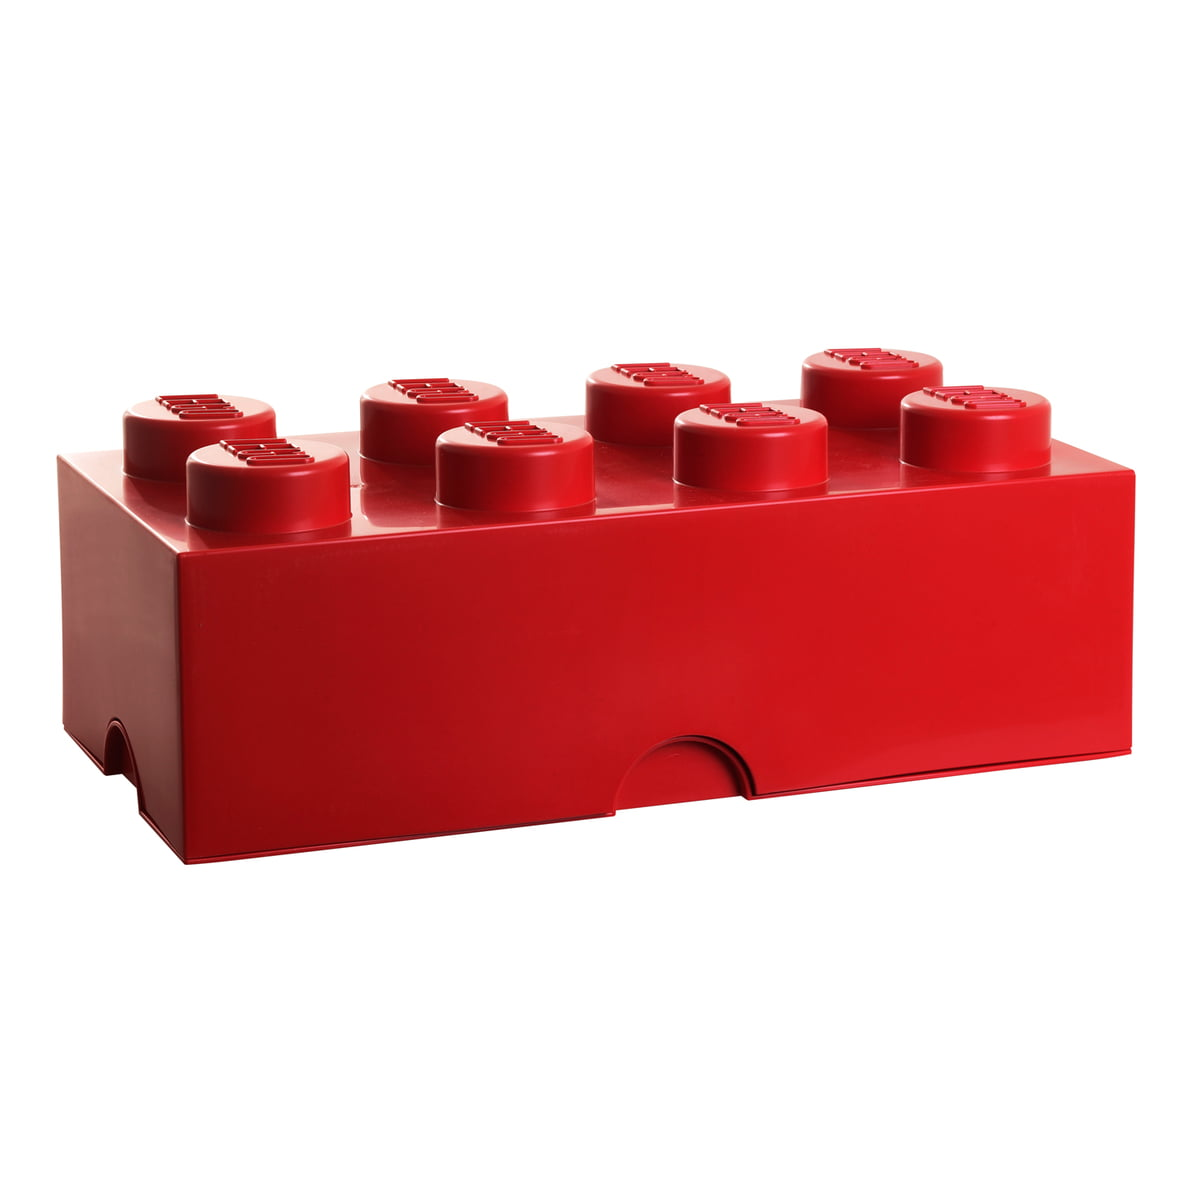 Lego storage box 8 rot